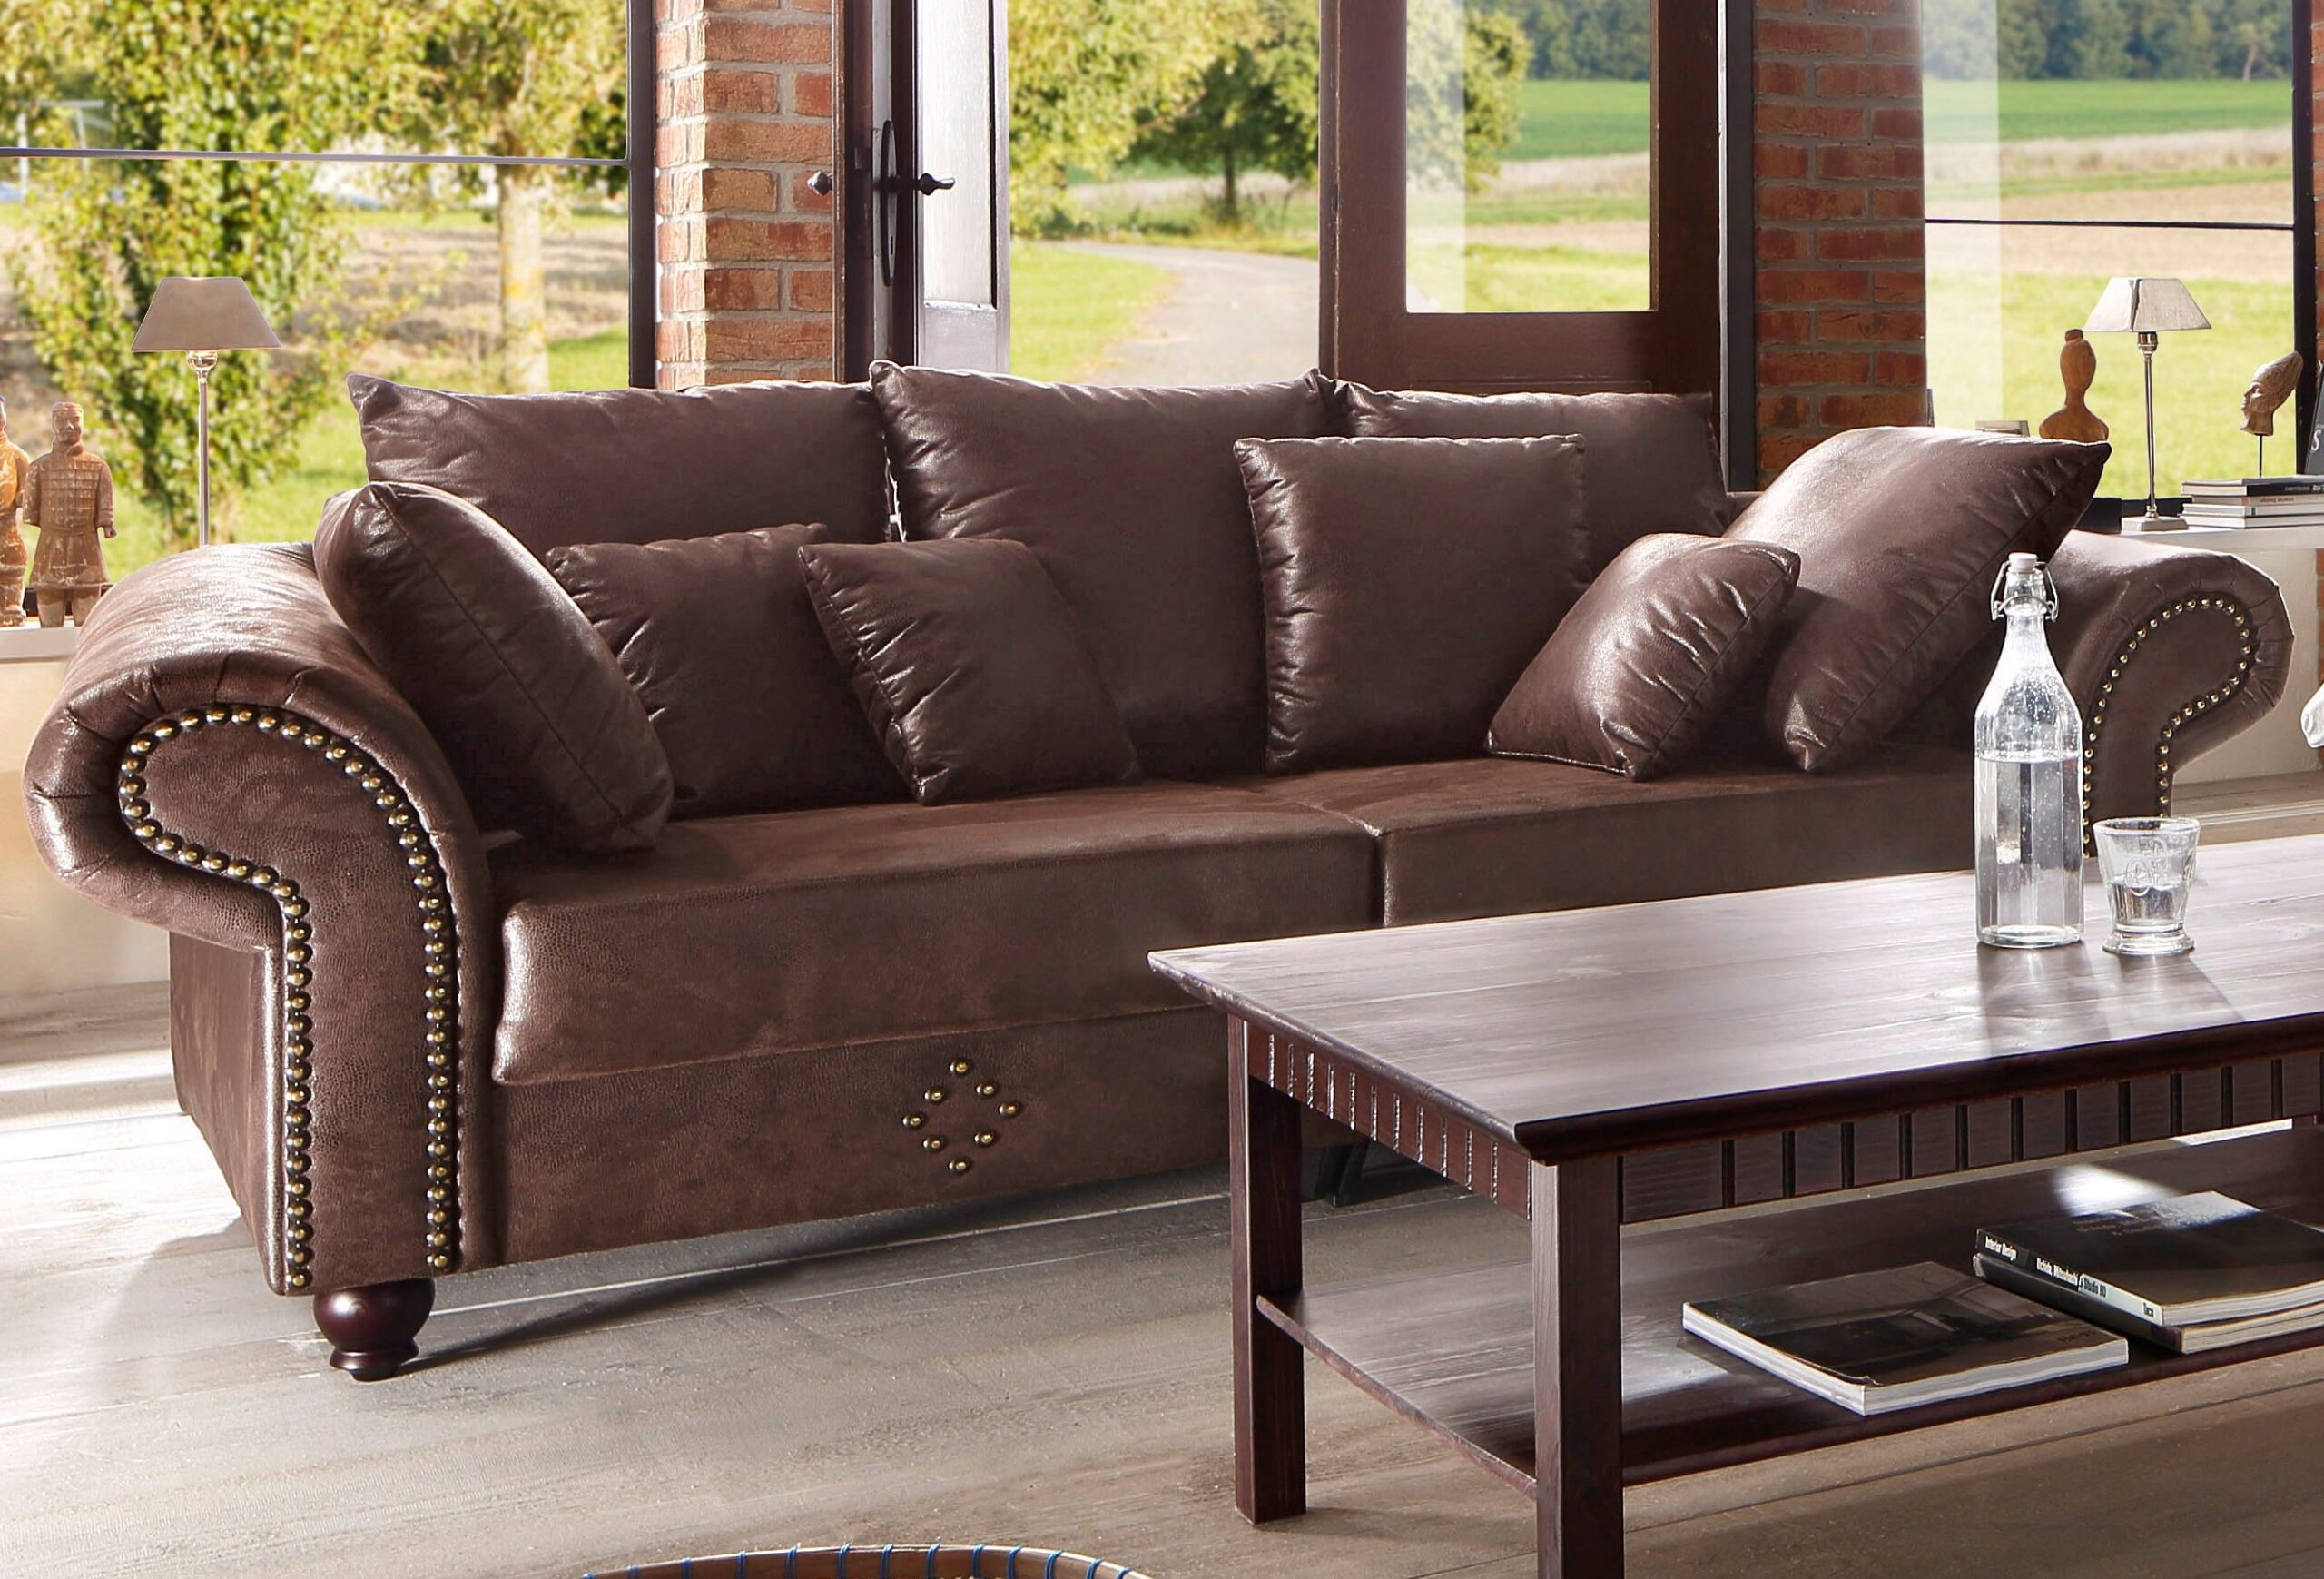 Full Size of Home Affaire Big Sofa 3 Sitzer Moule Small Schlafsofa Von Brhl Sofabed Ewald Schillig Sam Poco Hersteller Mit Relaxfunktion Schlaffunktion Grau Leder Sofa Home Affaire Big Sofa